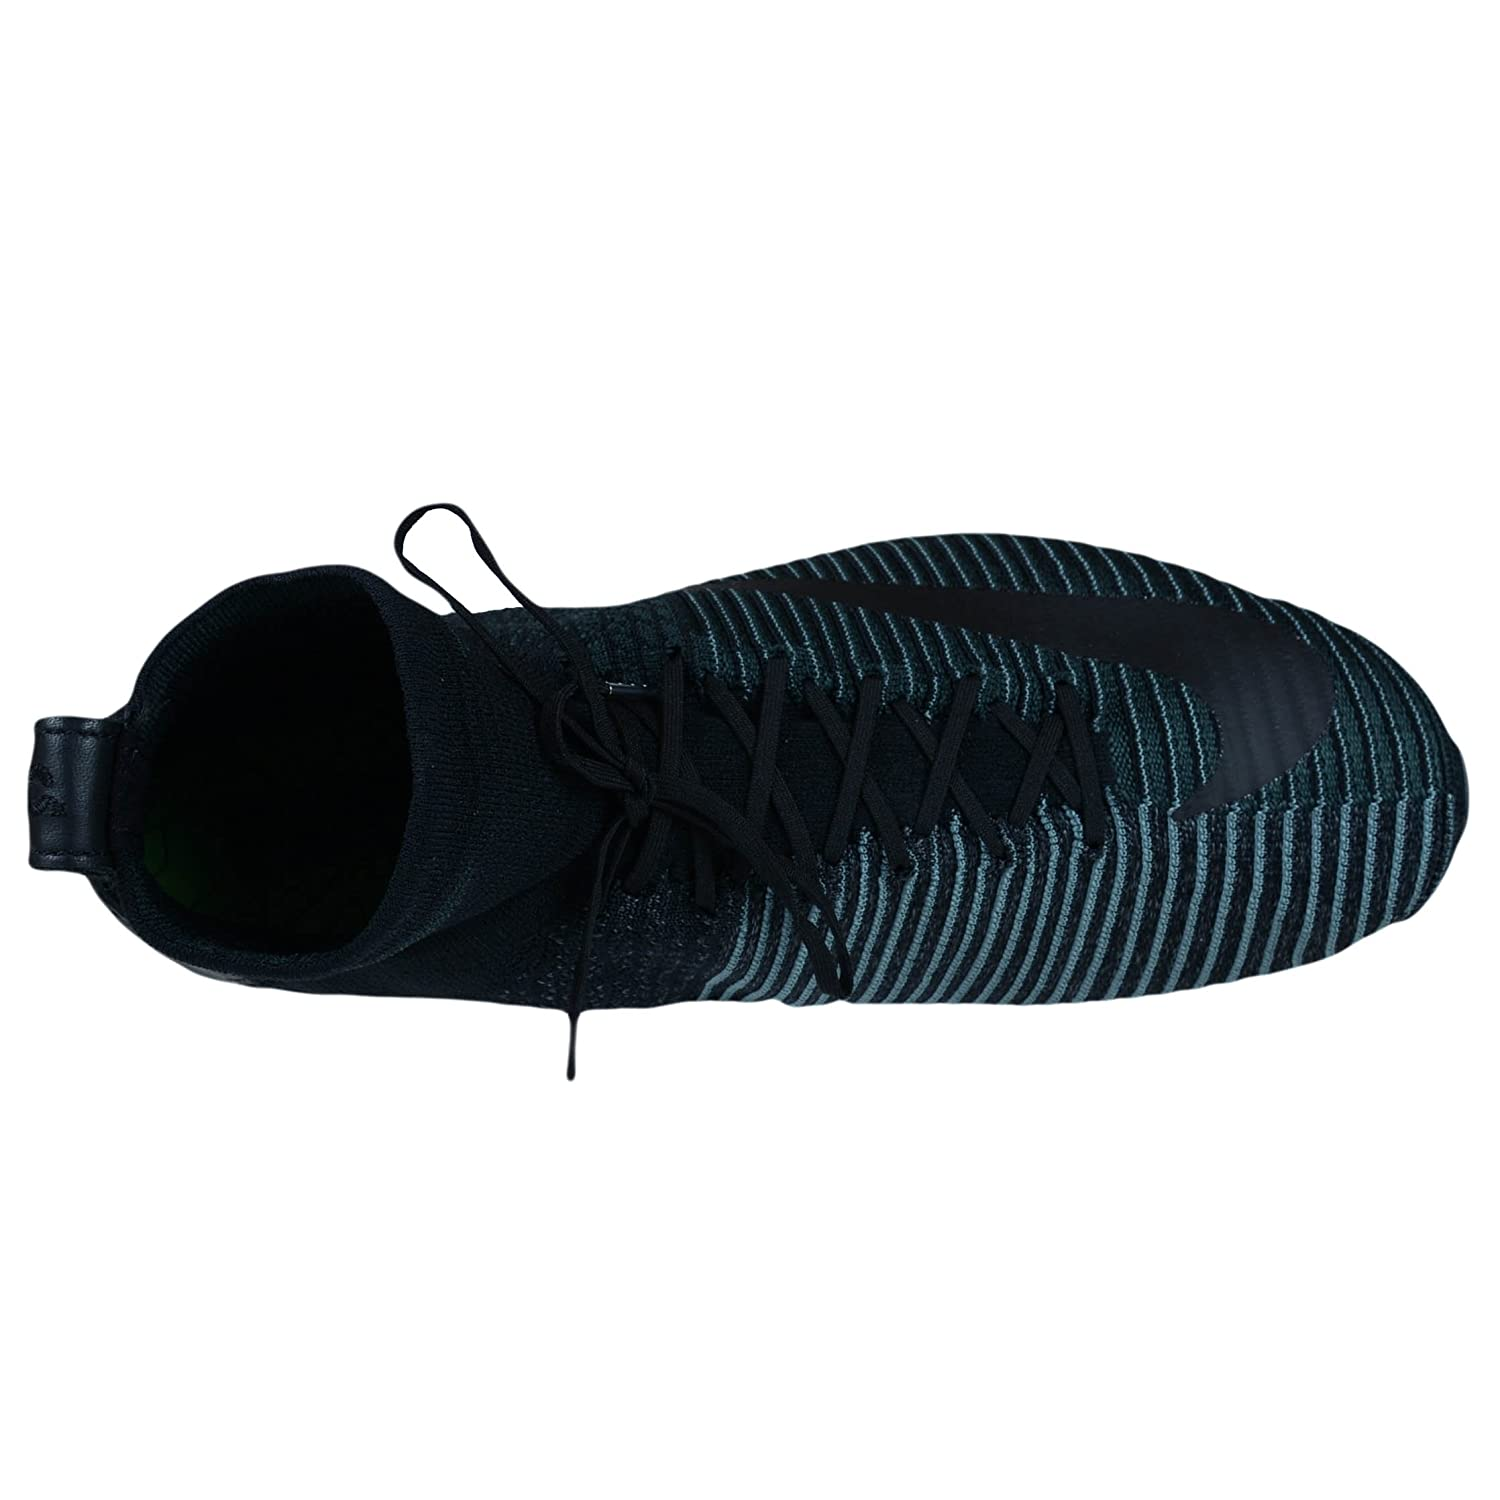 Black//Hasta-Seaweed Nike Zoom Mercurial XI Flyknit FC Mens fashion-sneakers c/_852616-001/_11.5